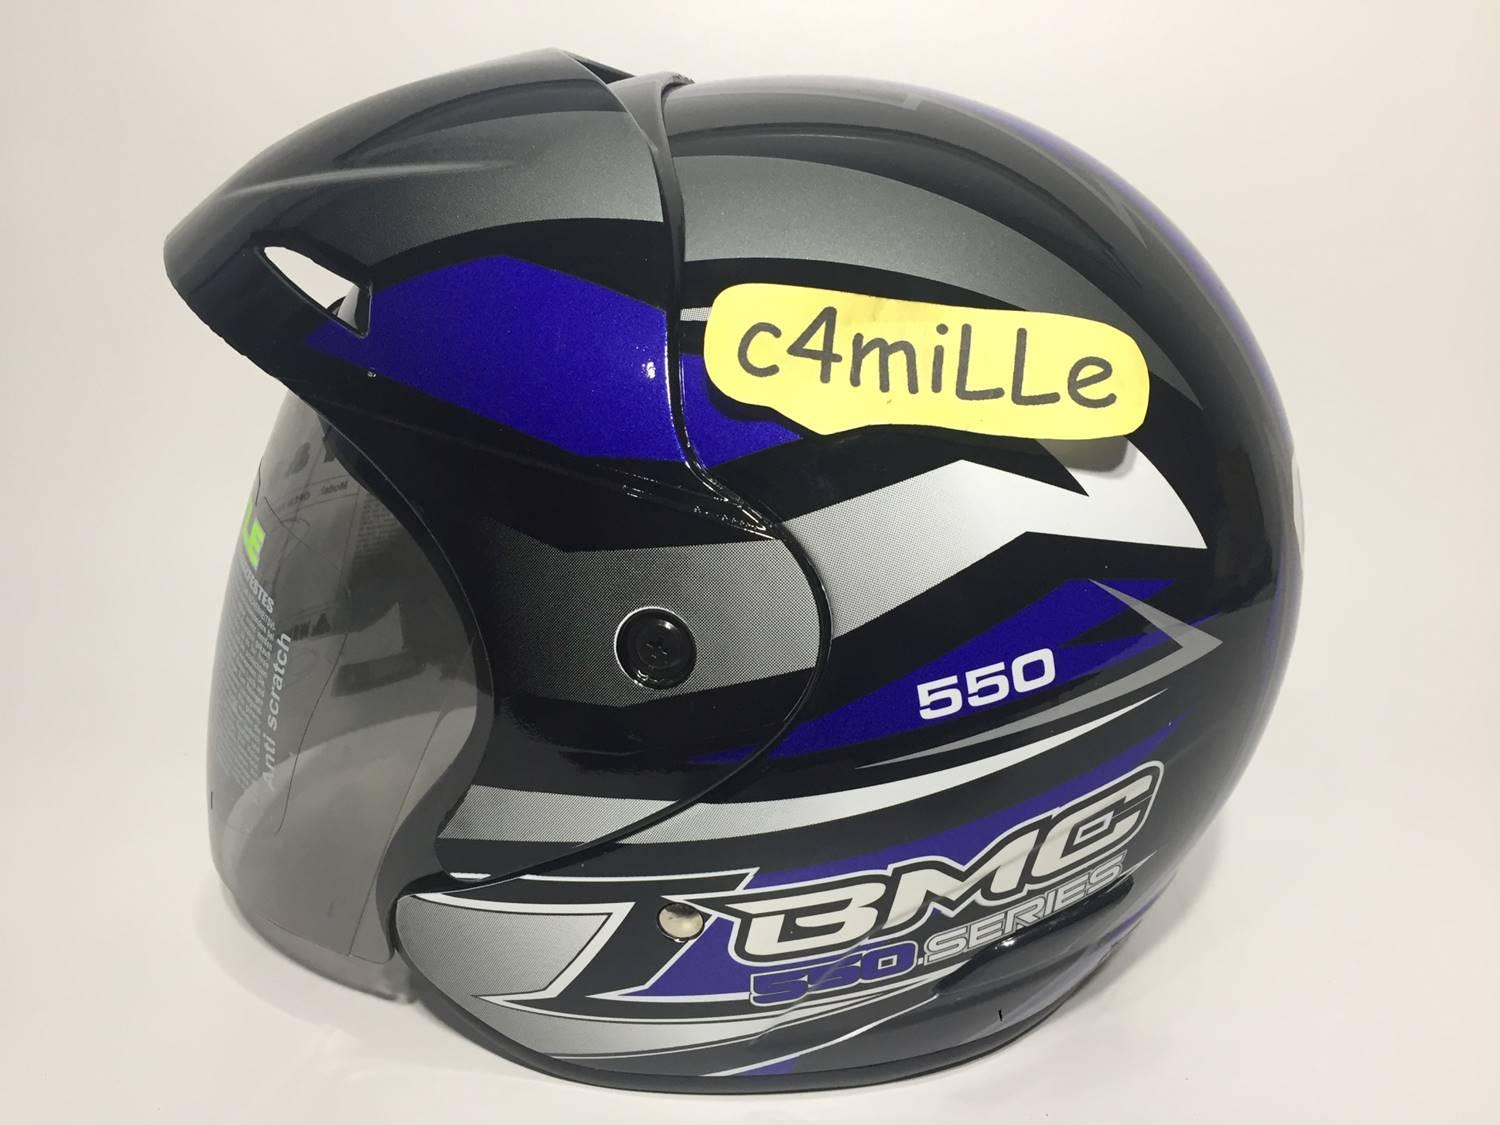 HELM BMC 560R #28 BLACK BLUE HALF FACE 560